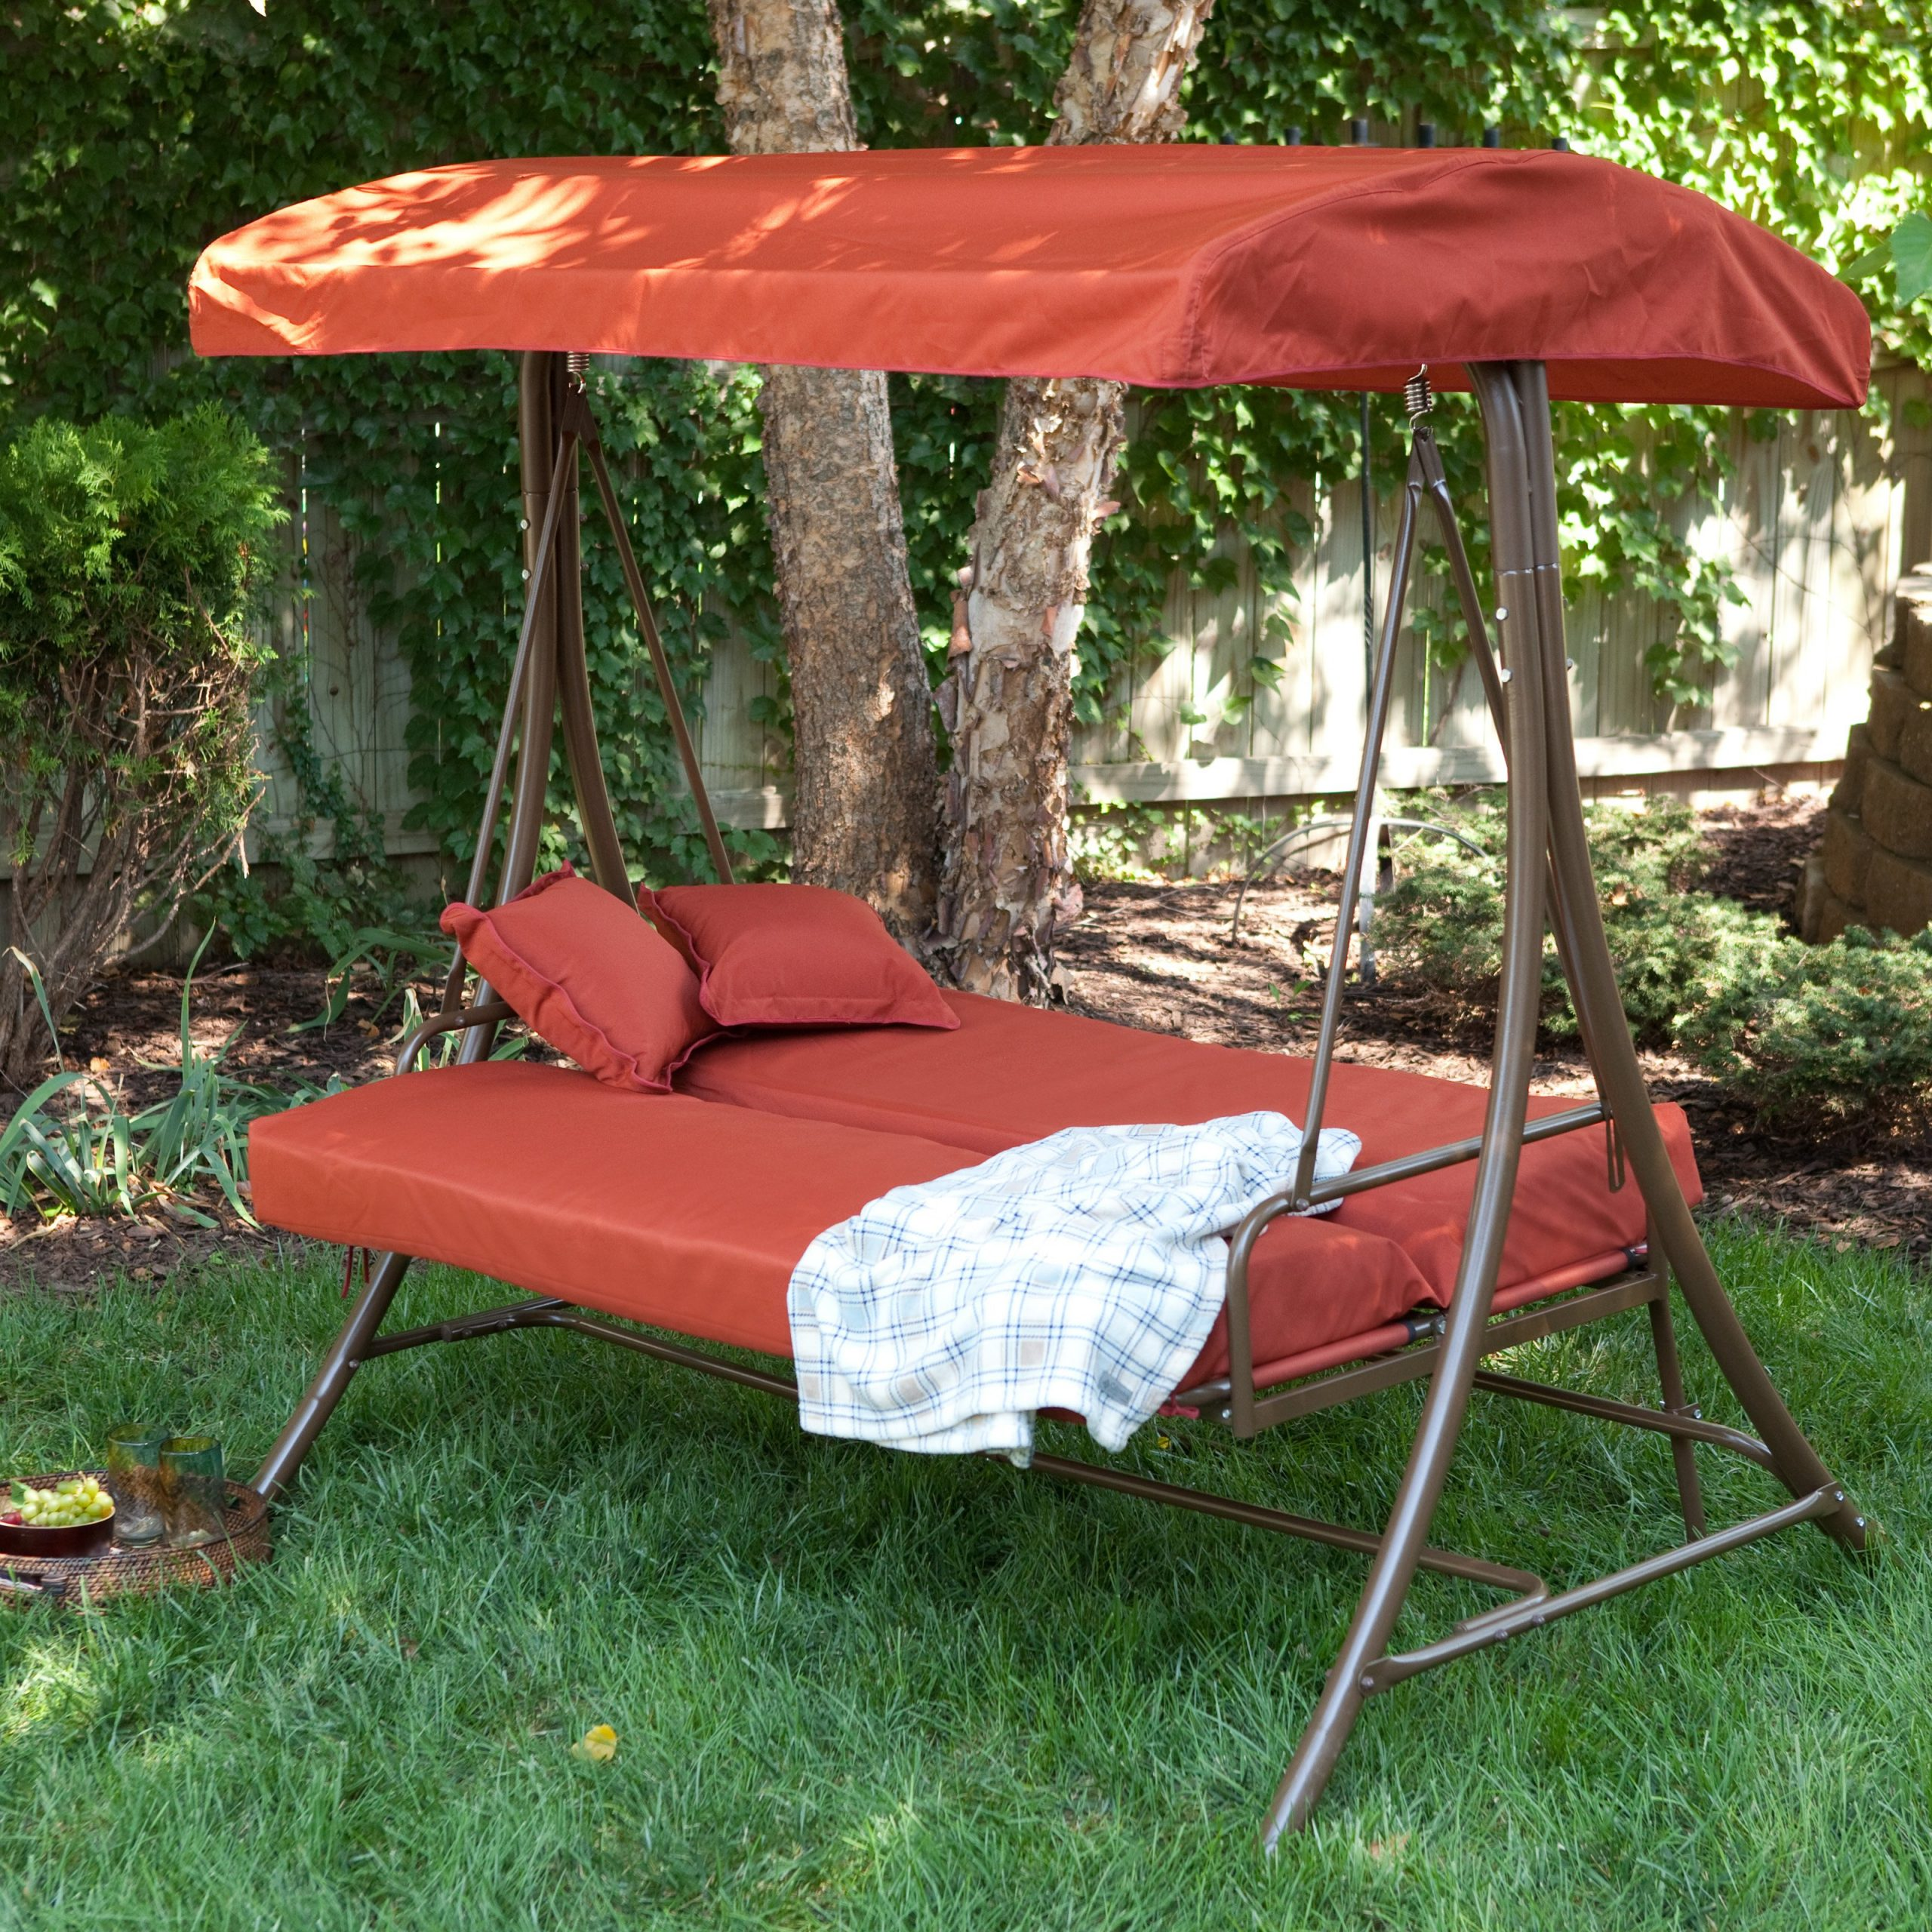 Hammock Patio Backyard Deck Ideas Dining Set Umbrella With With Regard To Patio Porch Swings With Stand (View 18 of 25)